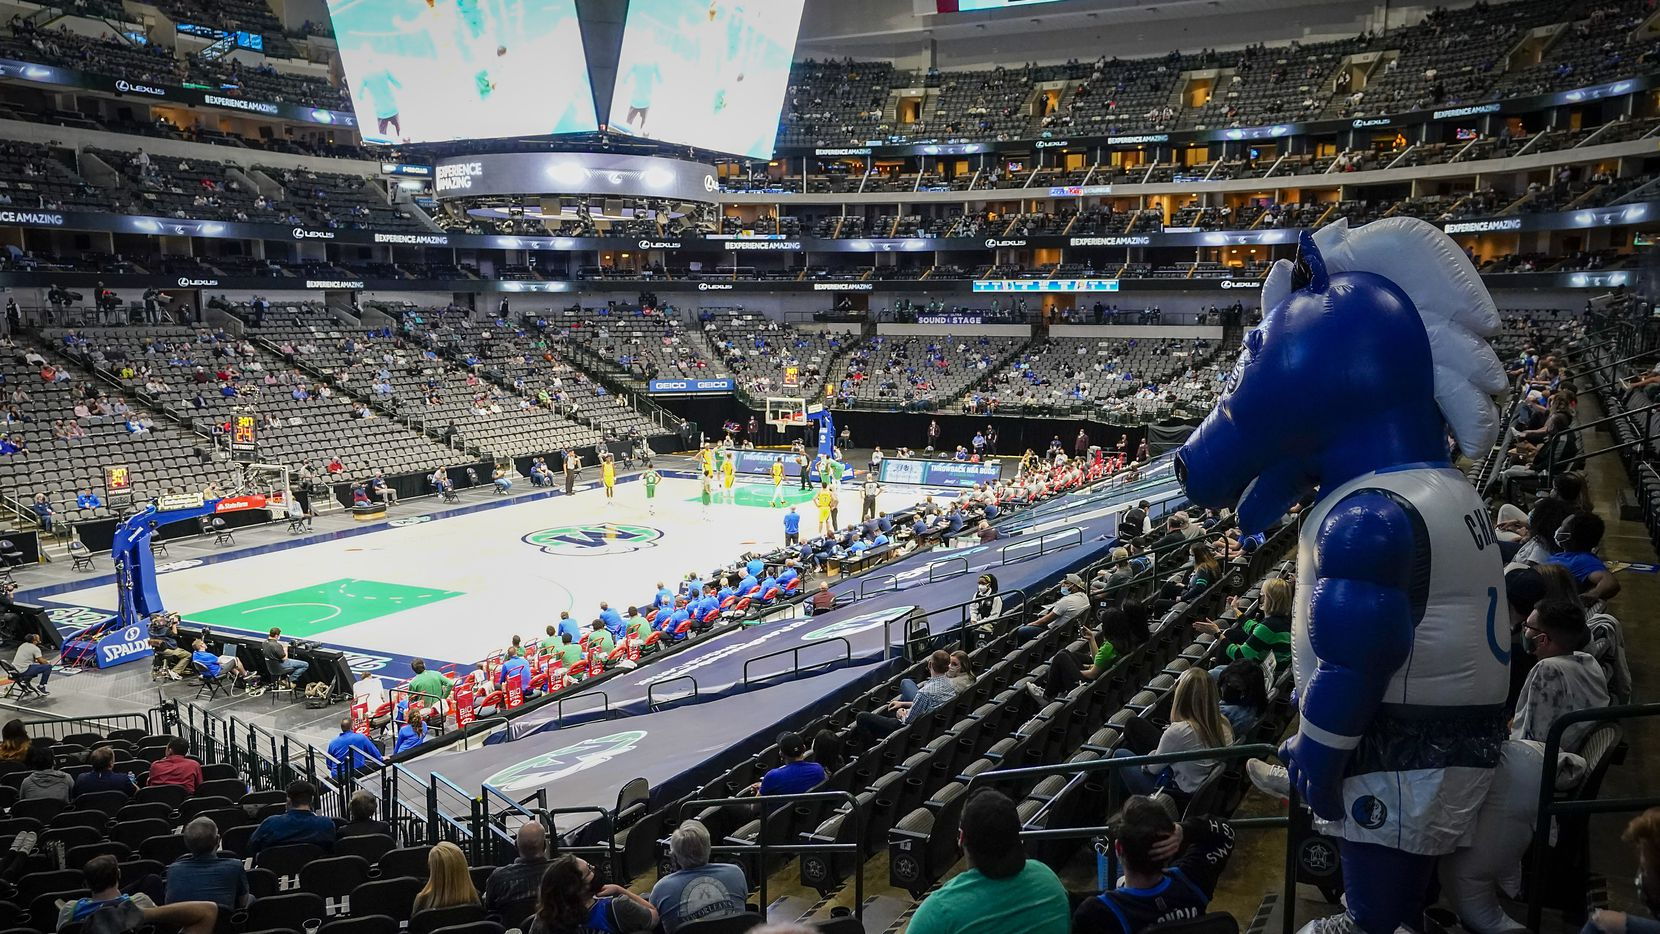 Dallas Mavericks mascot Champ watches from the stands during the second half of an NBA basketball game against the Indiana Pacers at American Airlines Center on Friday, March 26, 2021, in Dallas.